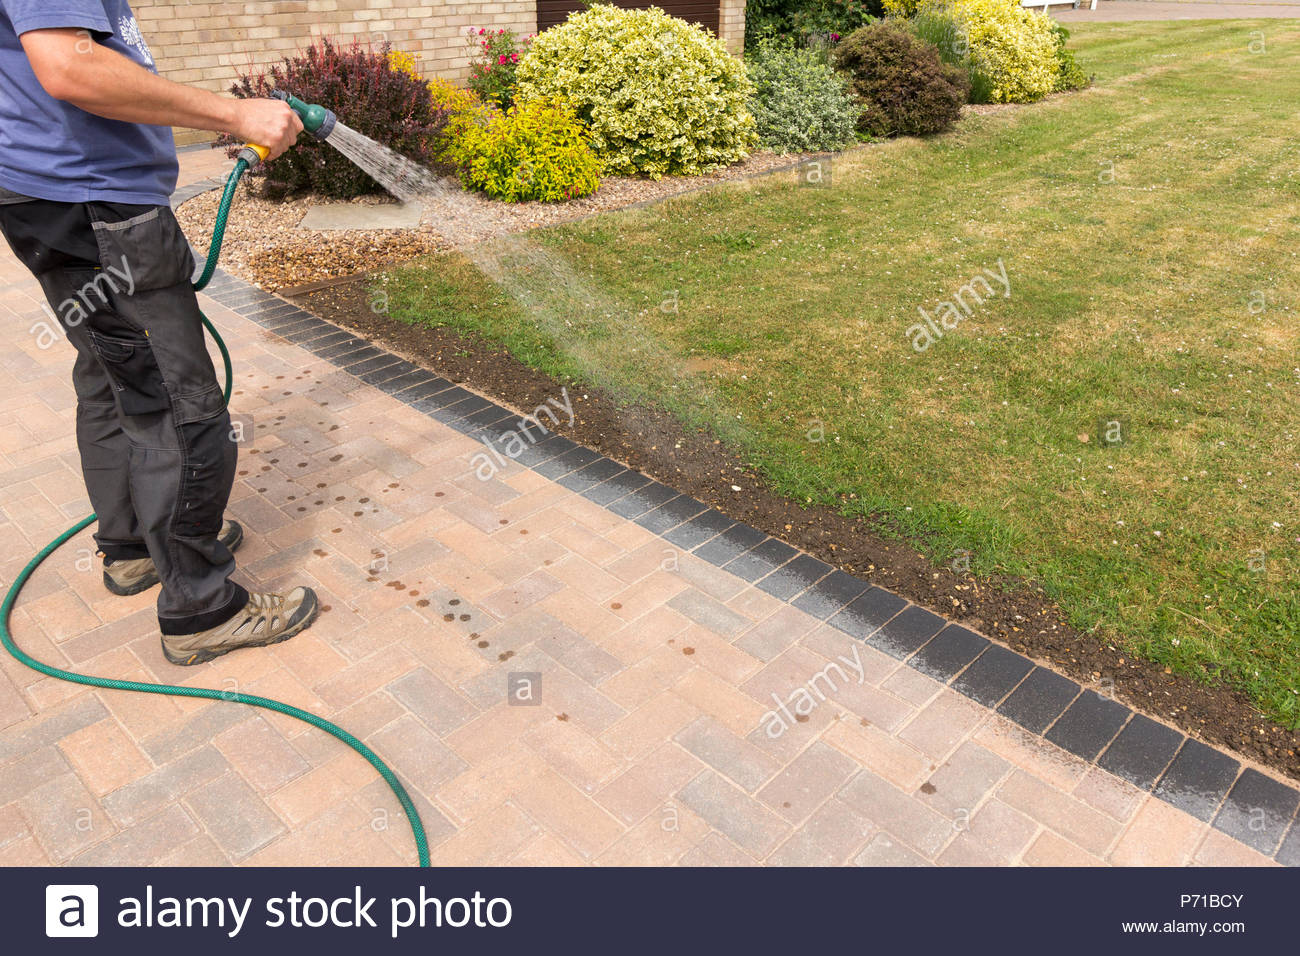 Man using a hosepipe to water in lawn seed to a strip of earth in grass lawn - Stock Image